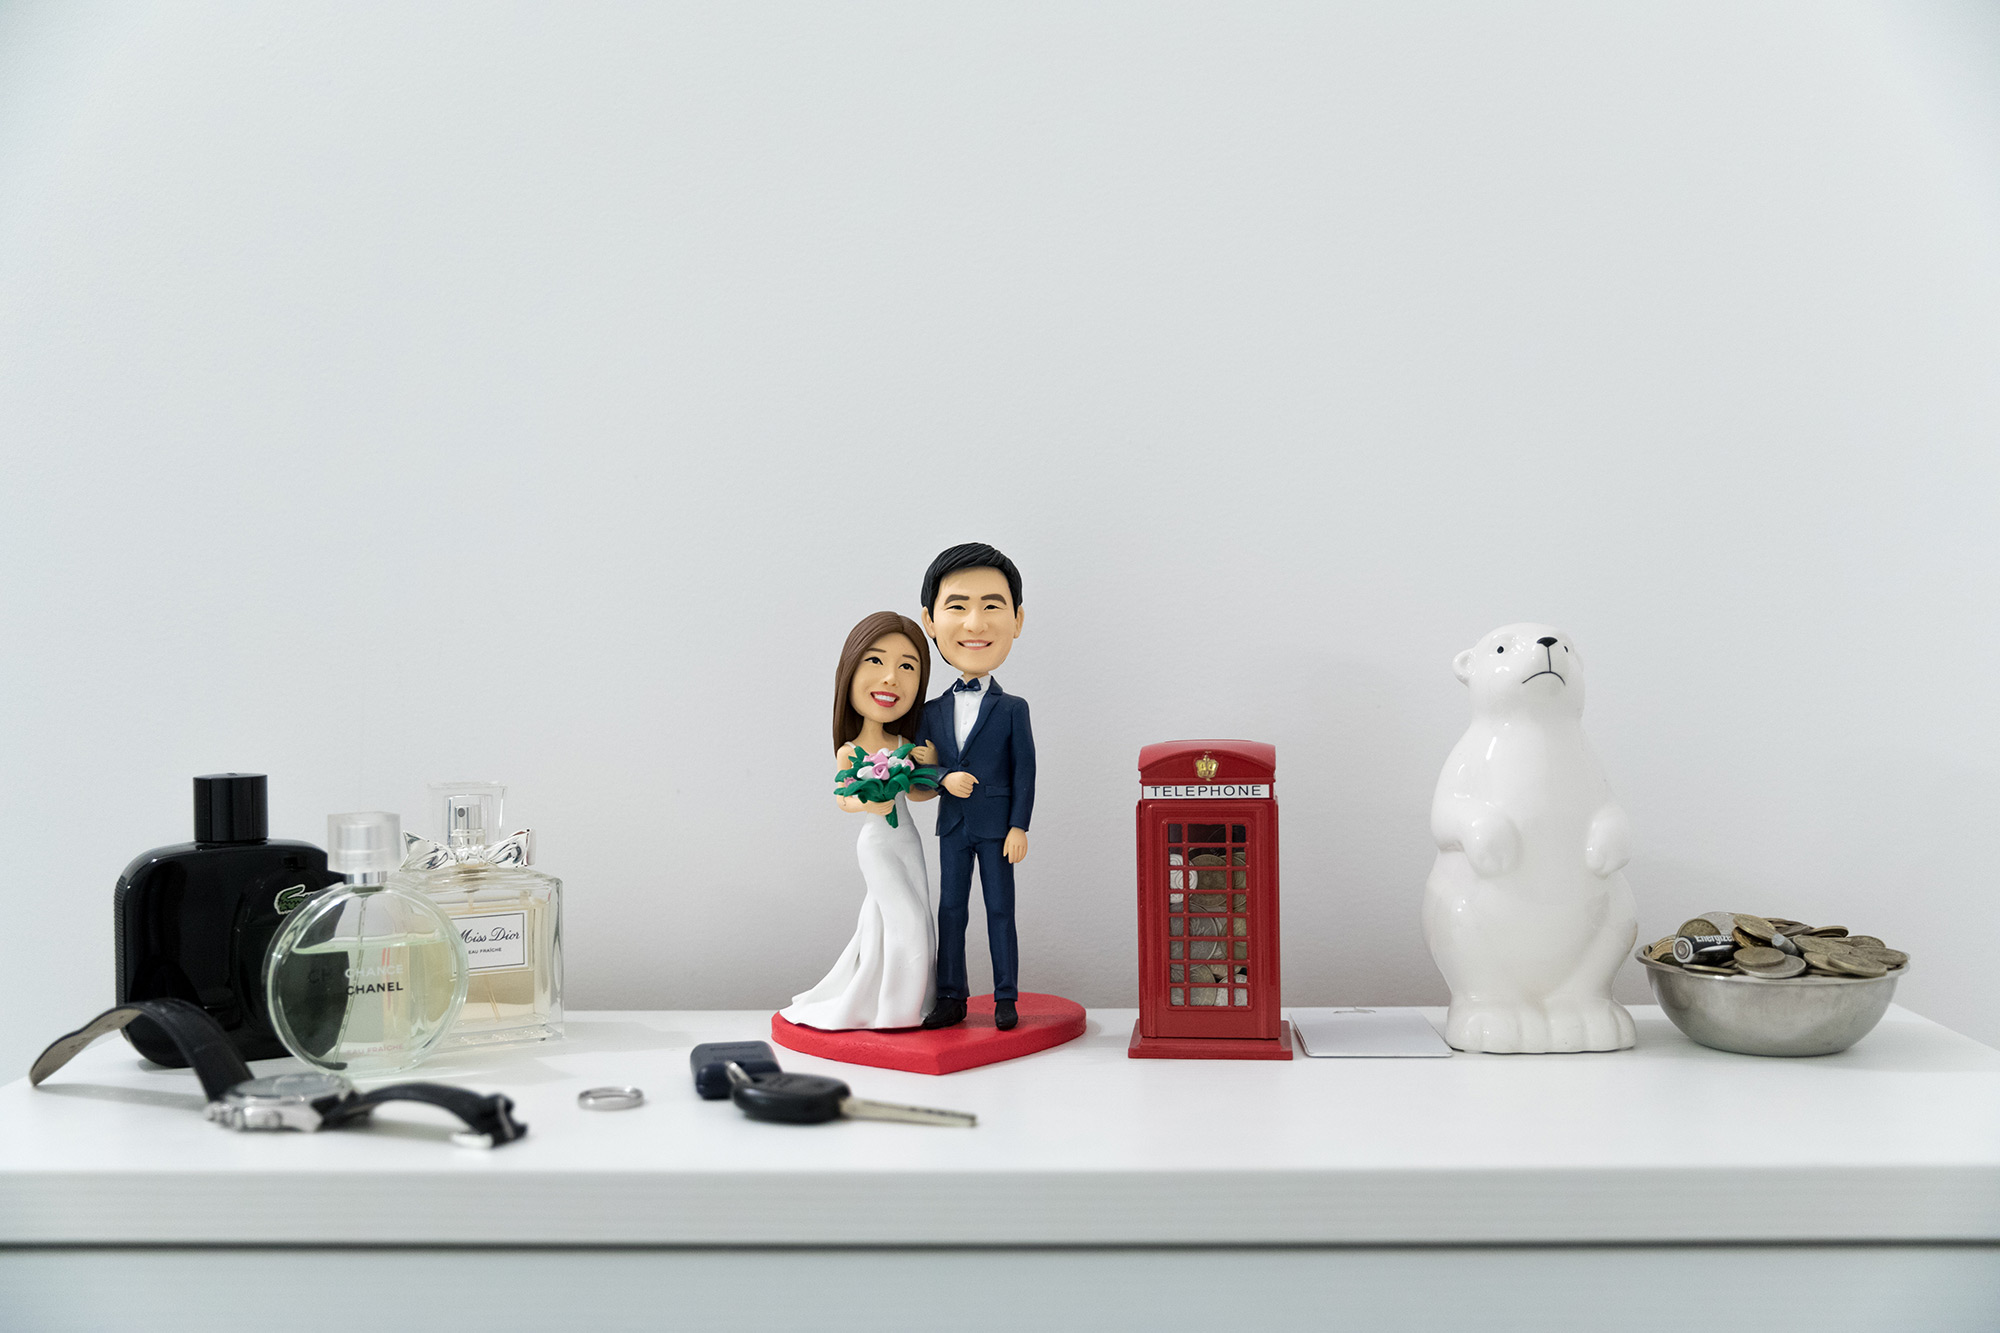 A Silk Road Marriage - Kazakh-Chinese cross-cultural couples in Kazakhstan